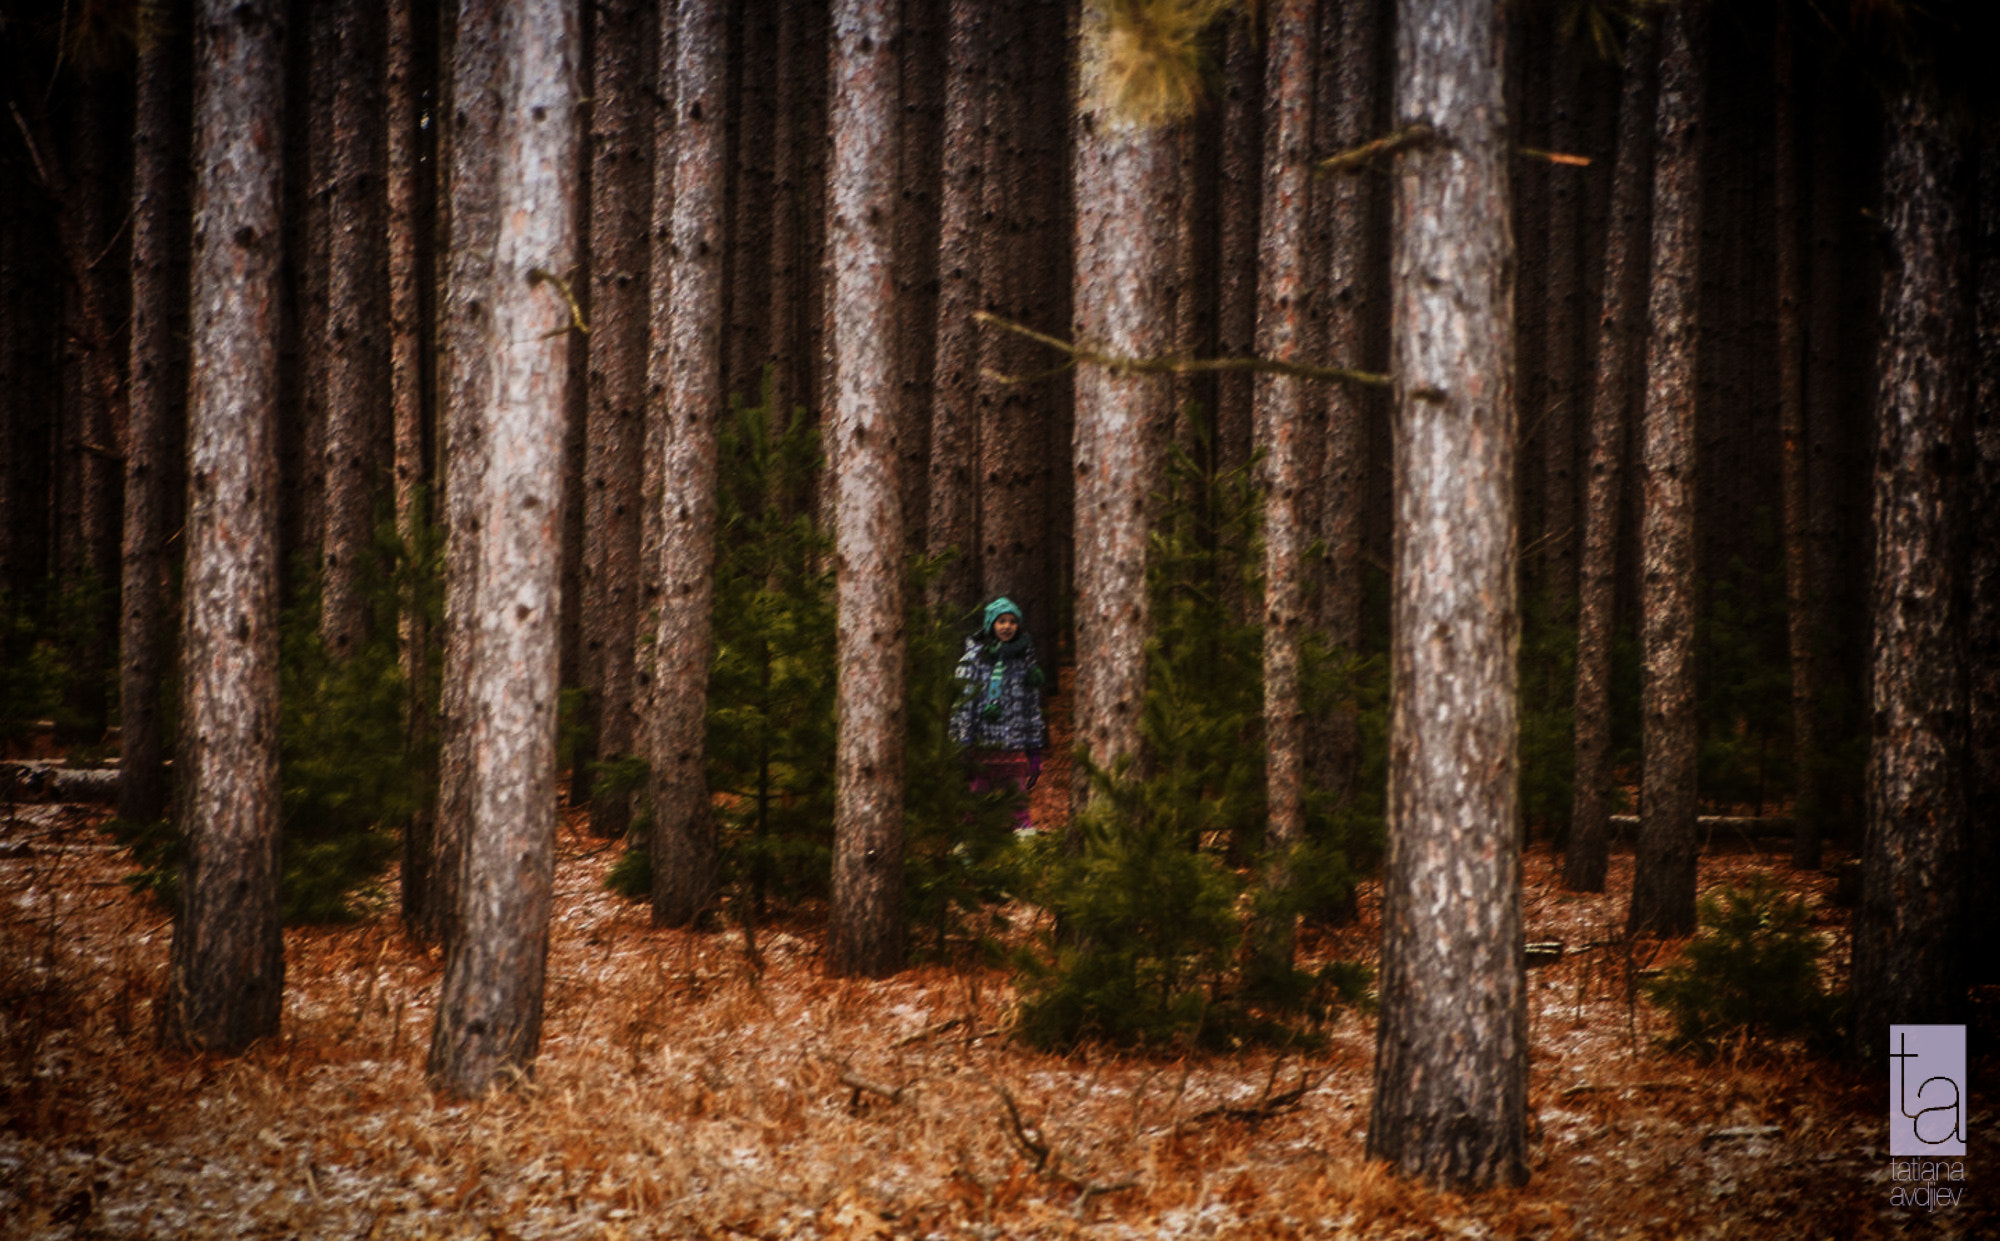 Photograph Deep forest by Tatiana Avdjiev on 500px